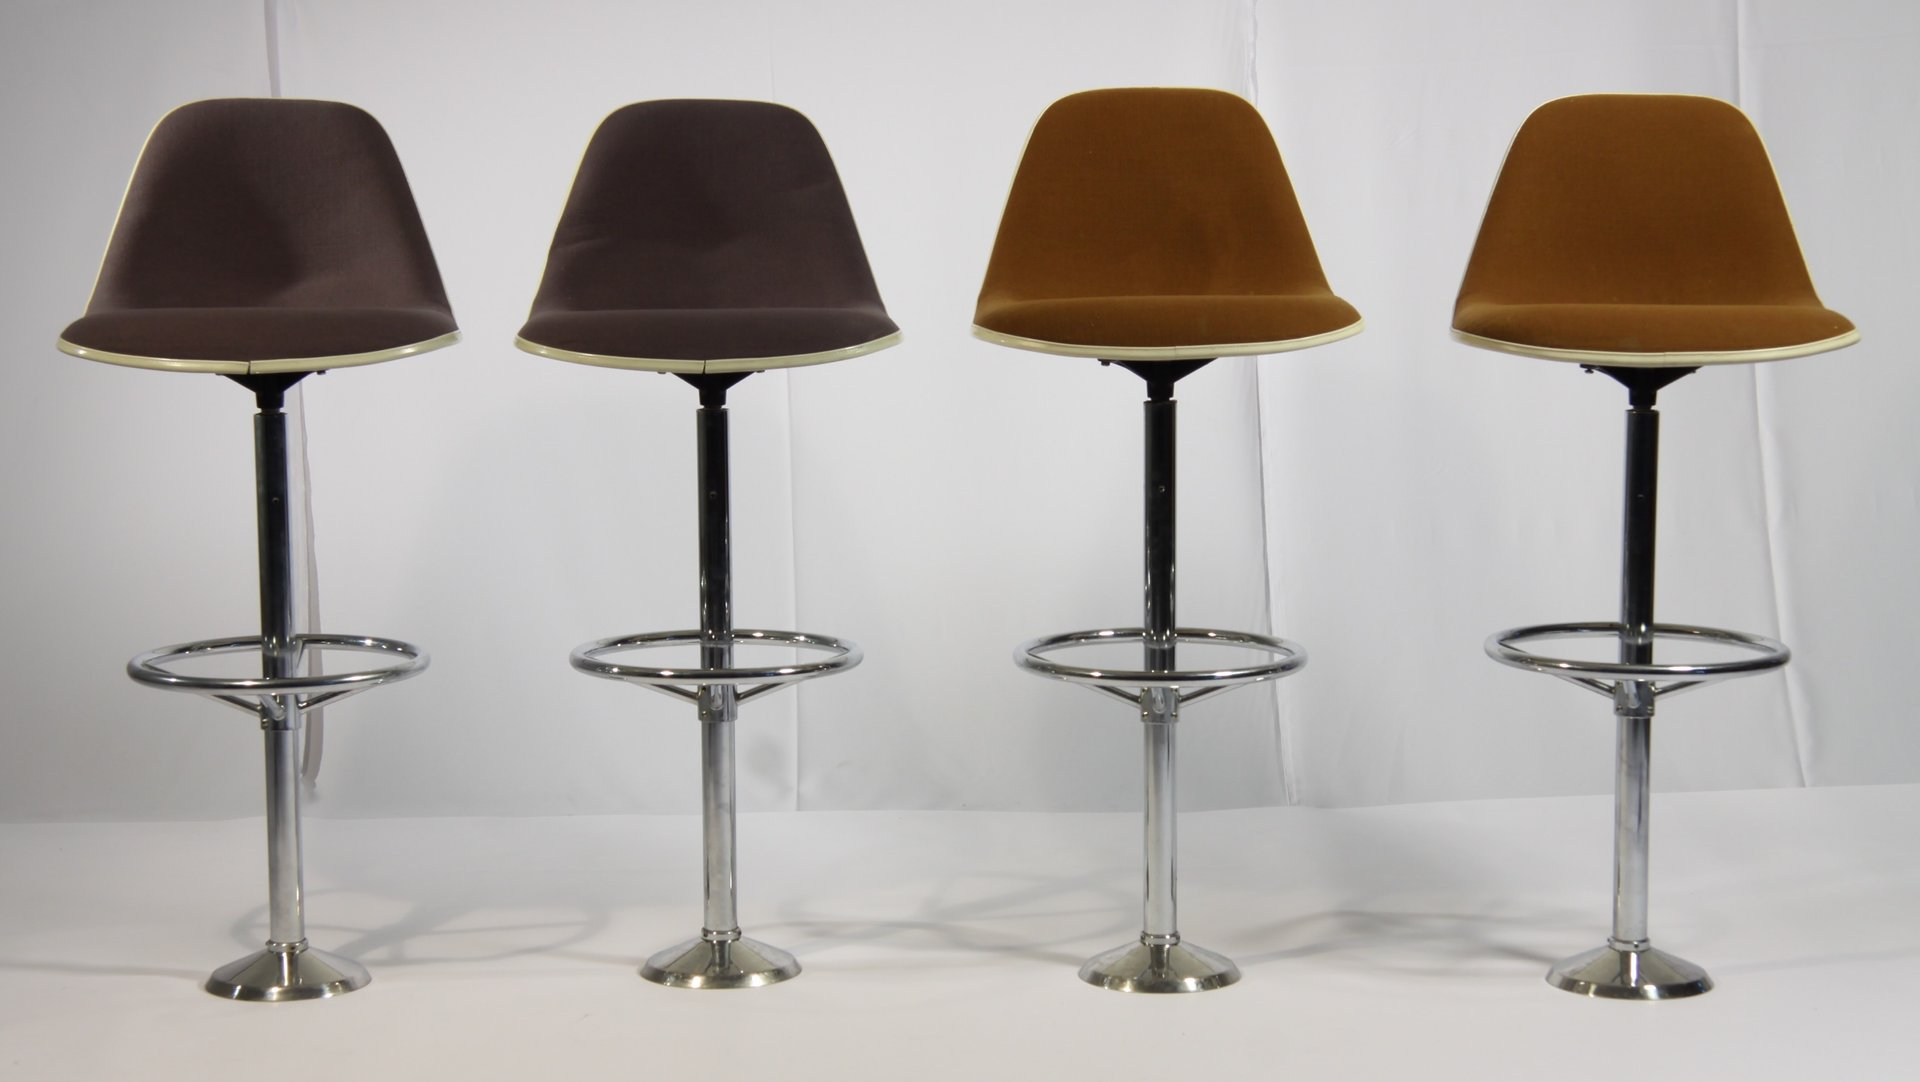 vintage bar stools by ray charles eames for herman miller set of 4 - Vintage Bar Stools